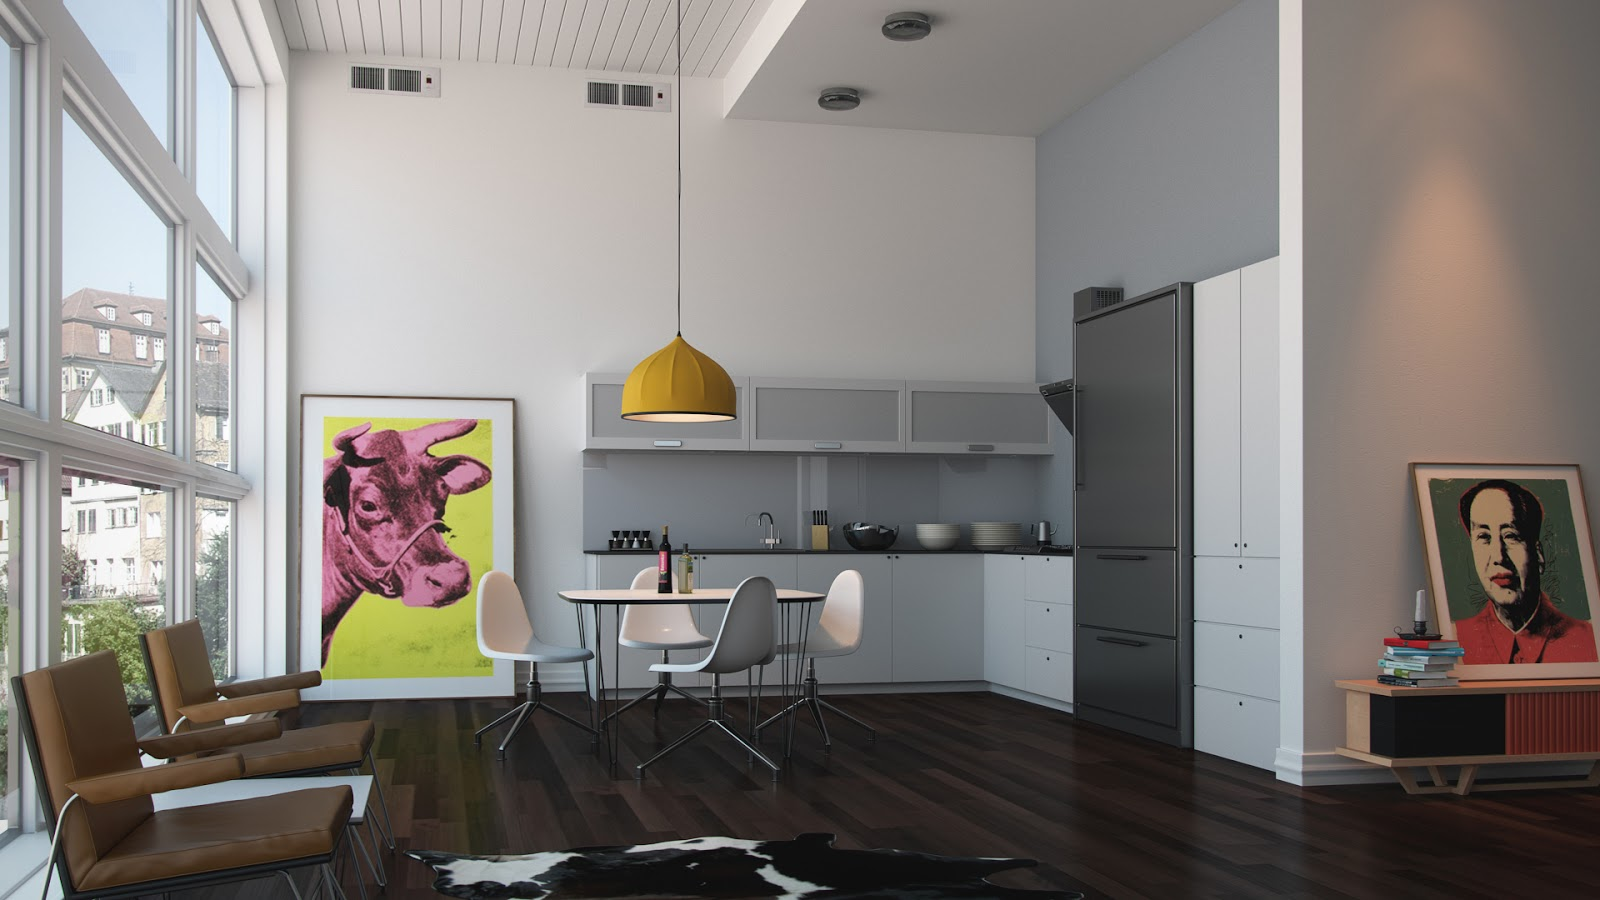 realistic 3ds max vray scene download